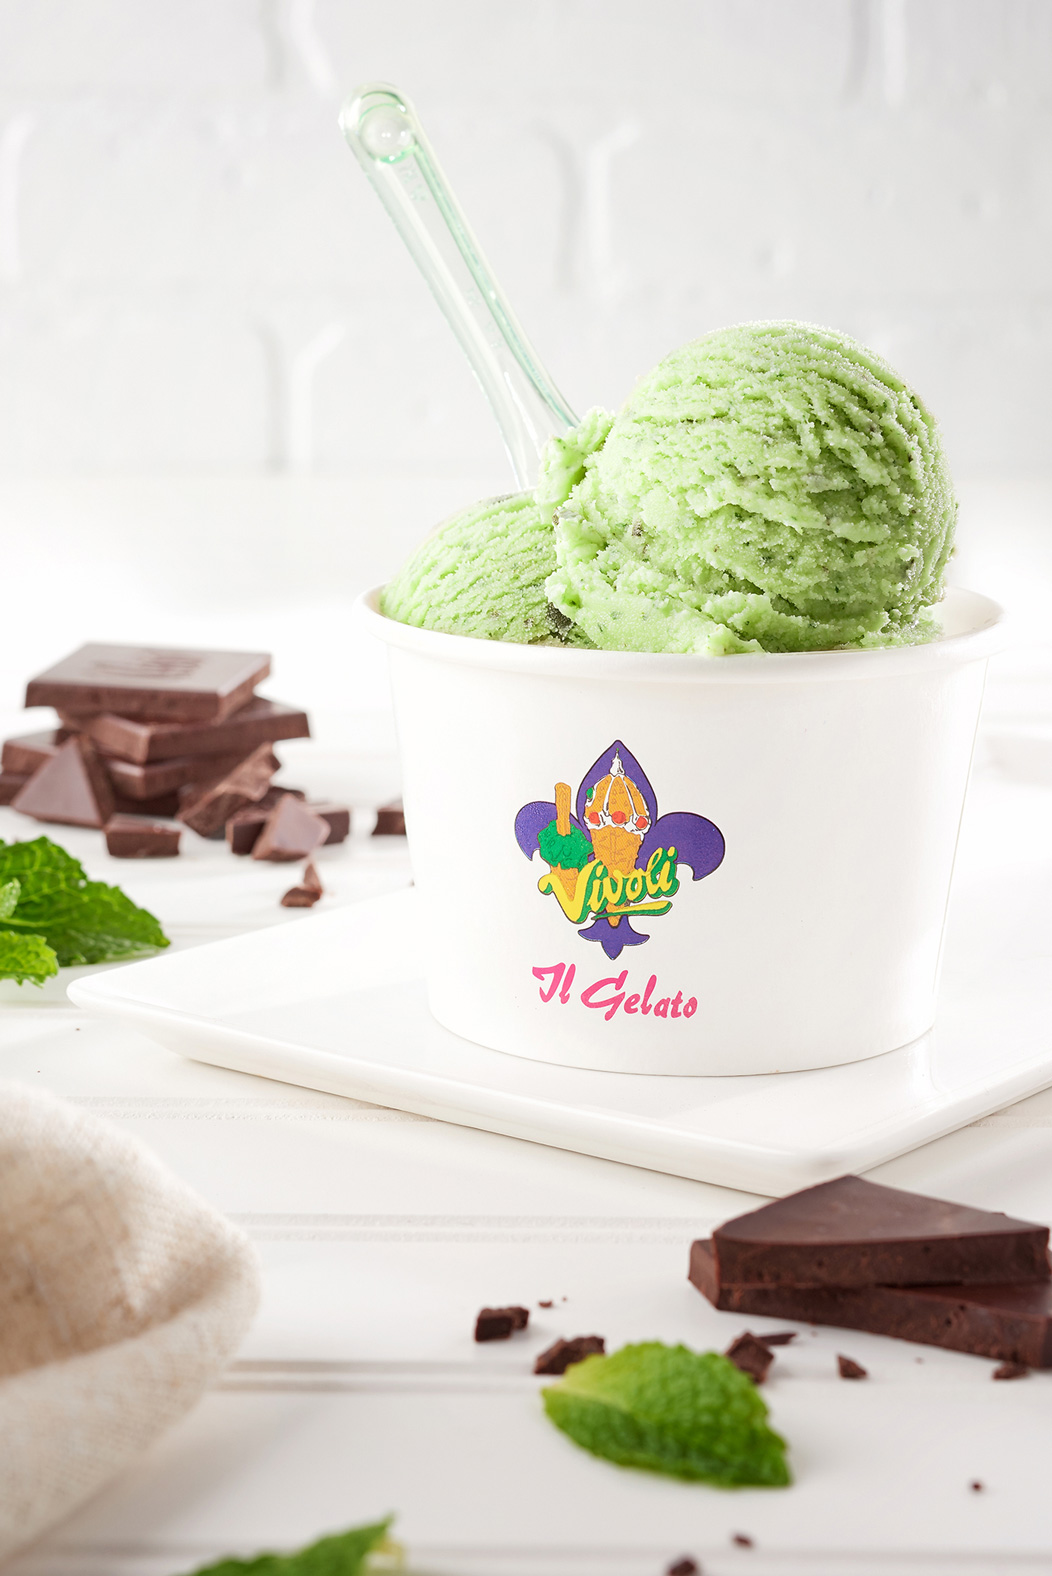 vivoli-il-gelato-mint-chocolate-chip-food-photography